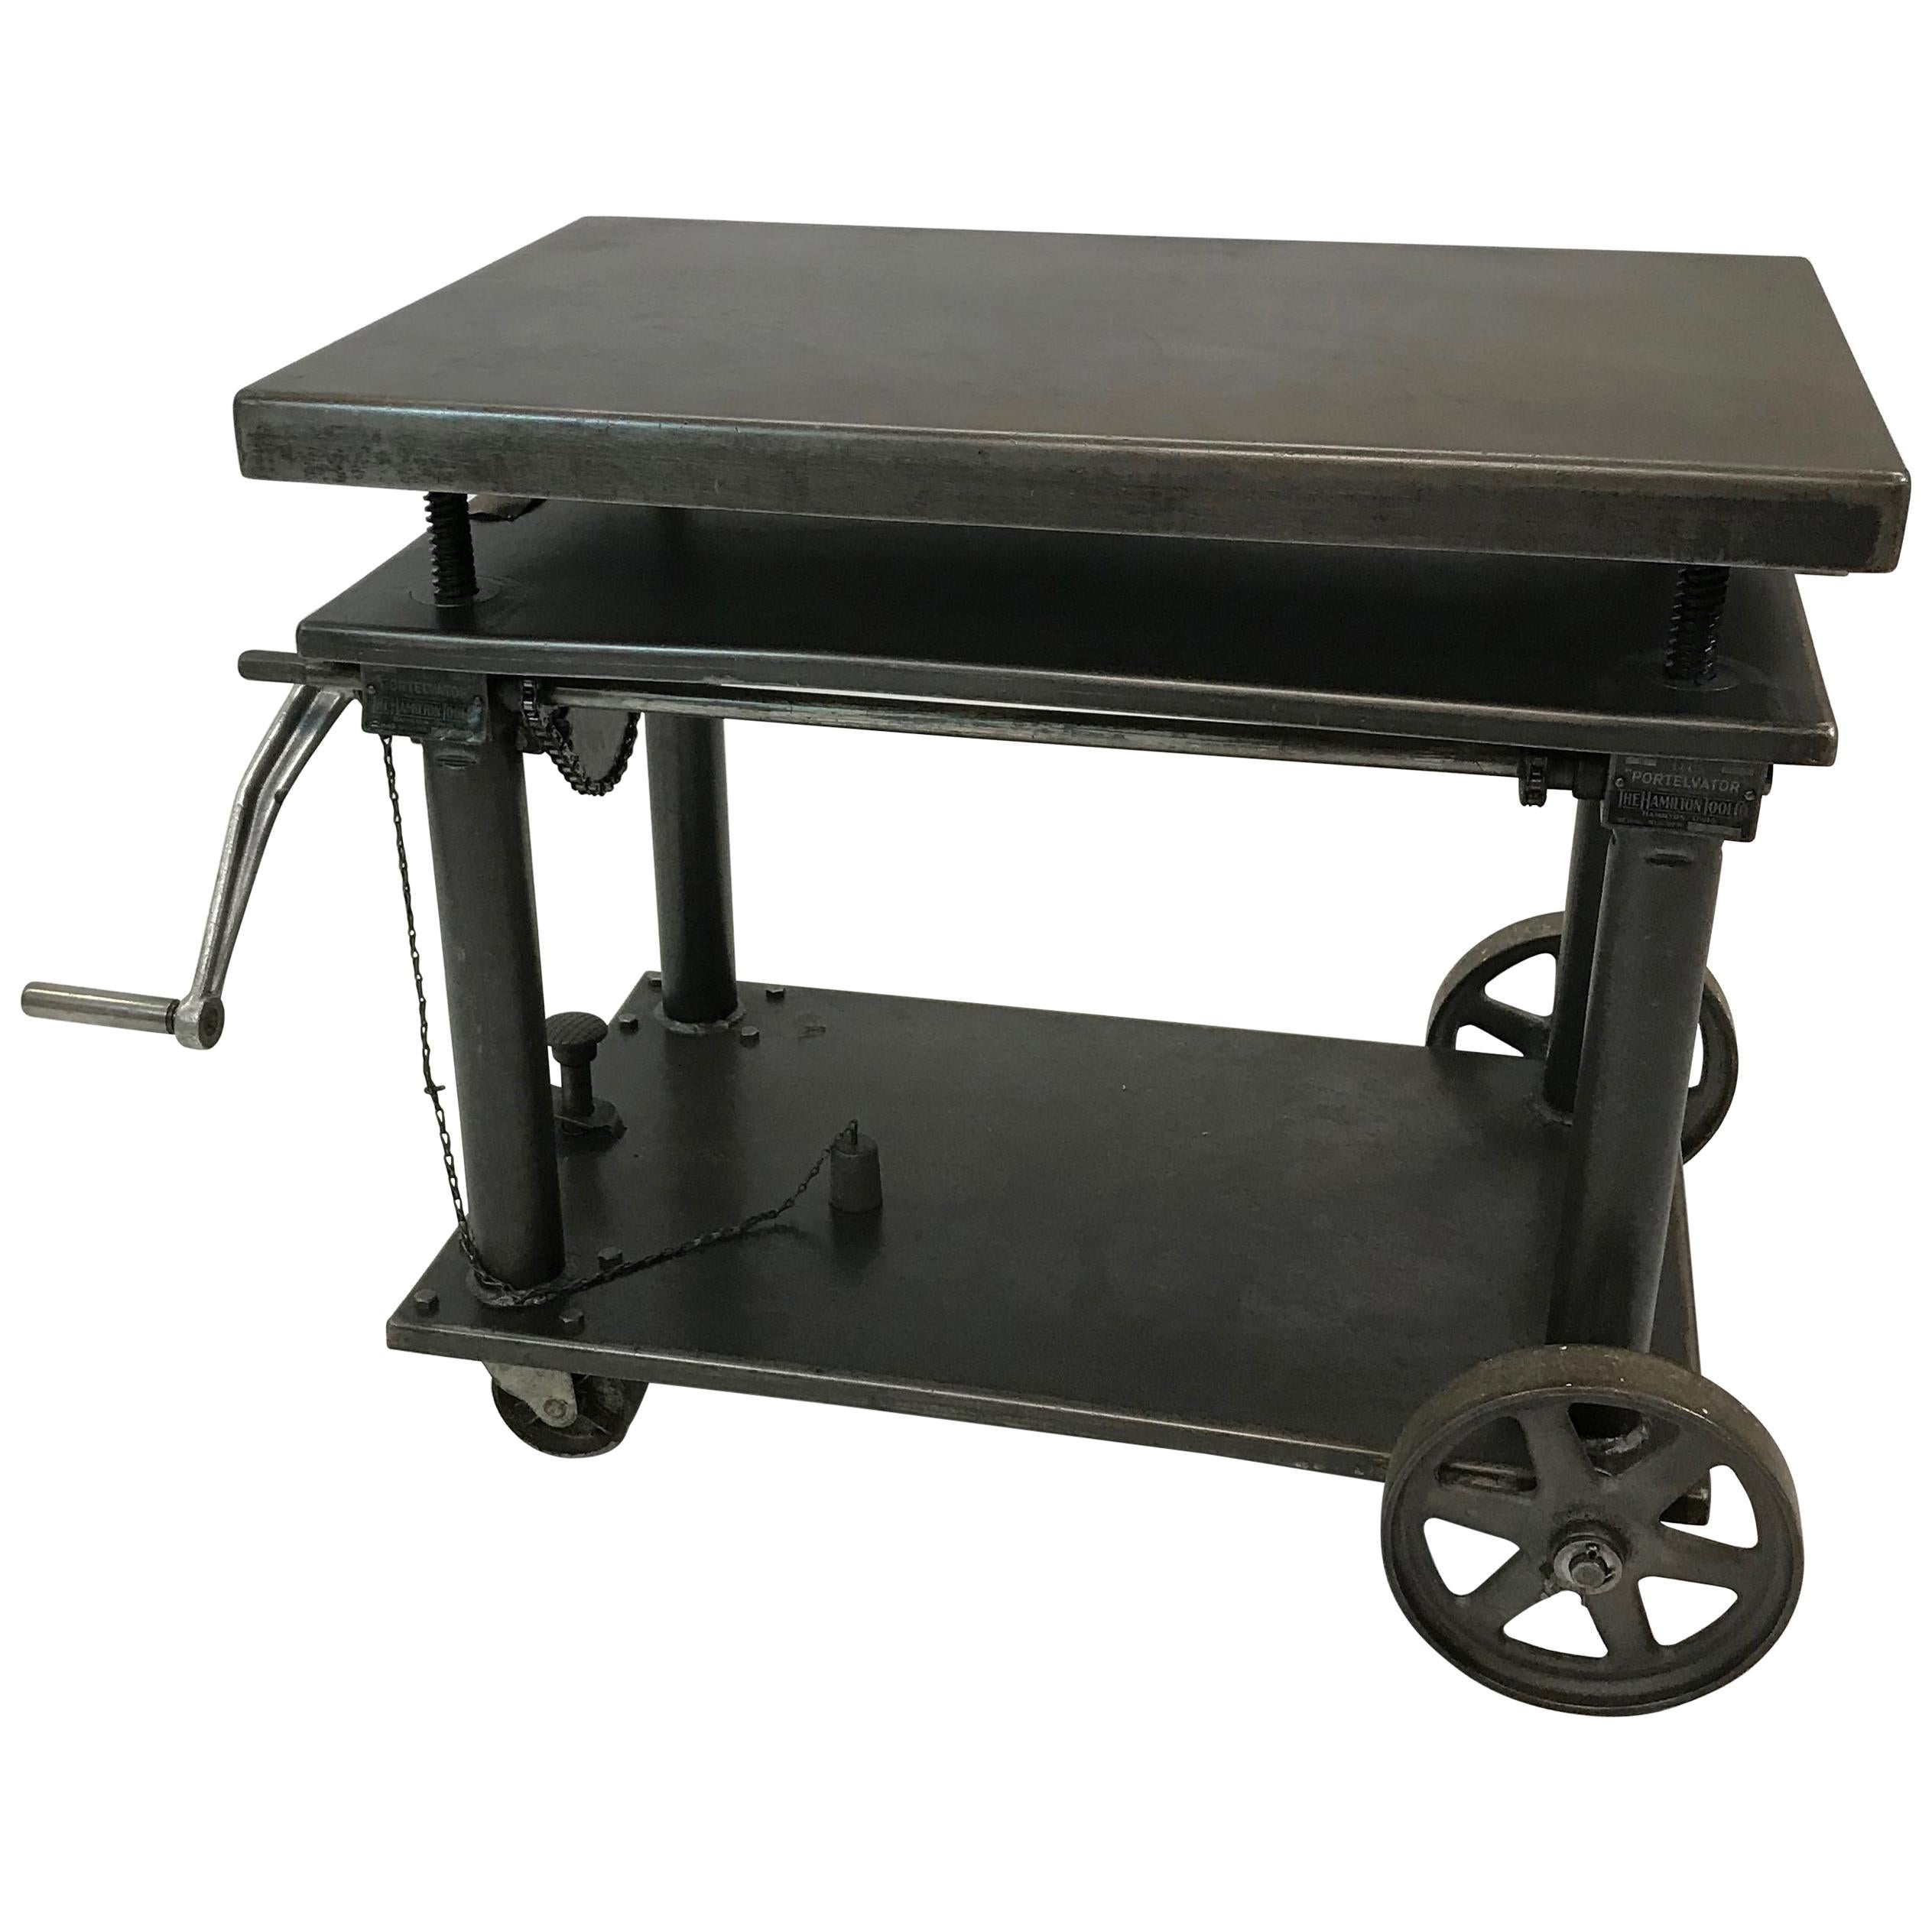 Vintage rolling cart coffee table industrial rustic wood and cast iron factory at 1stdibs